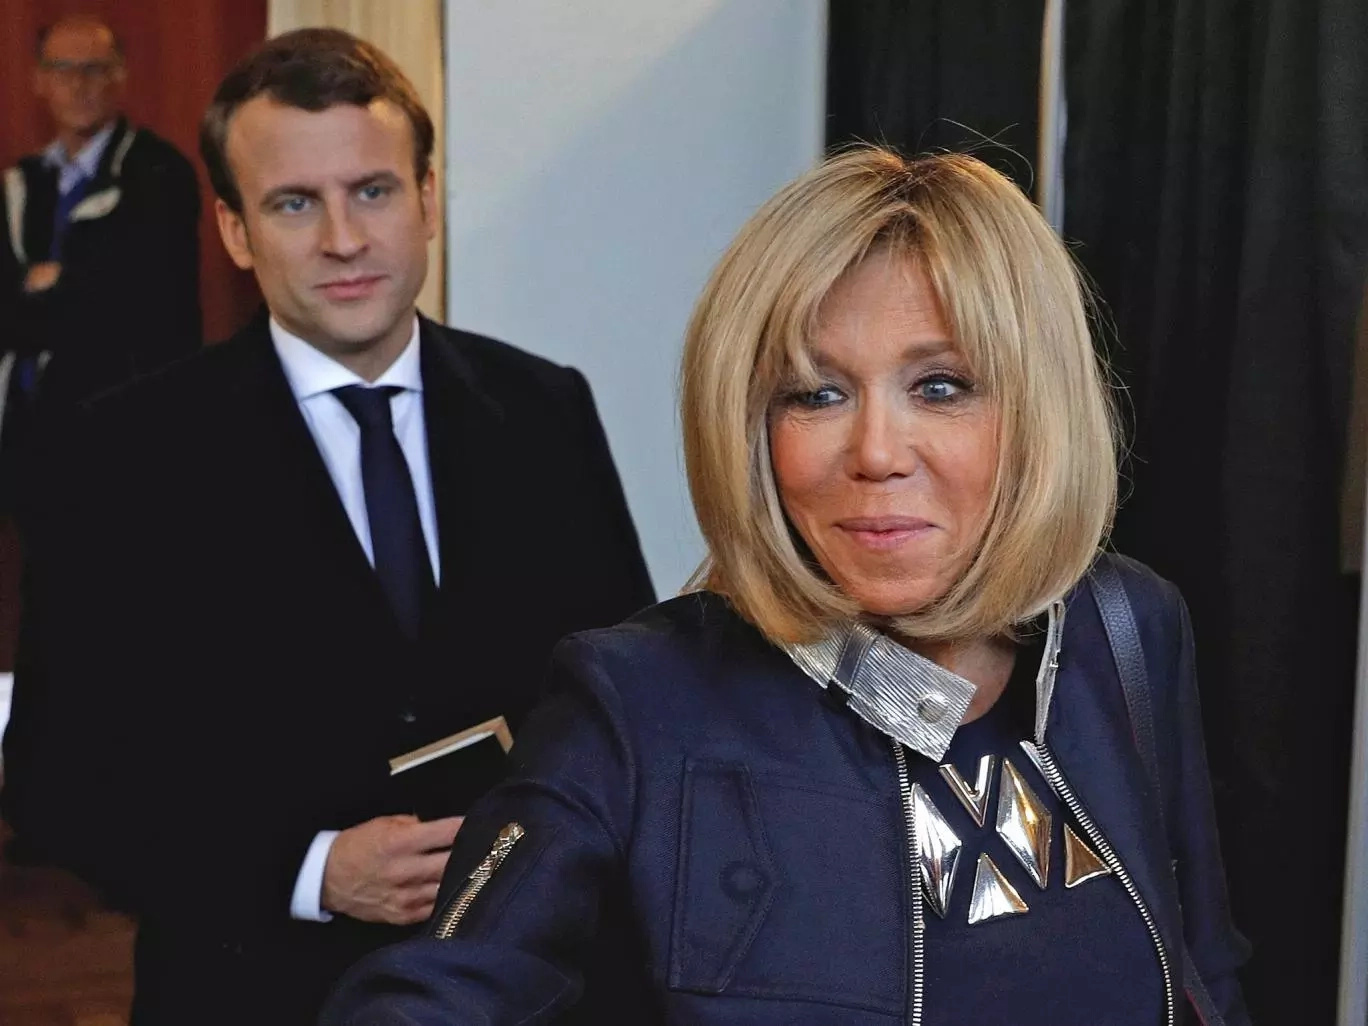 The next First Couple of France